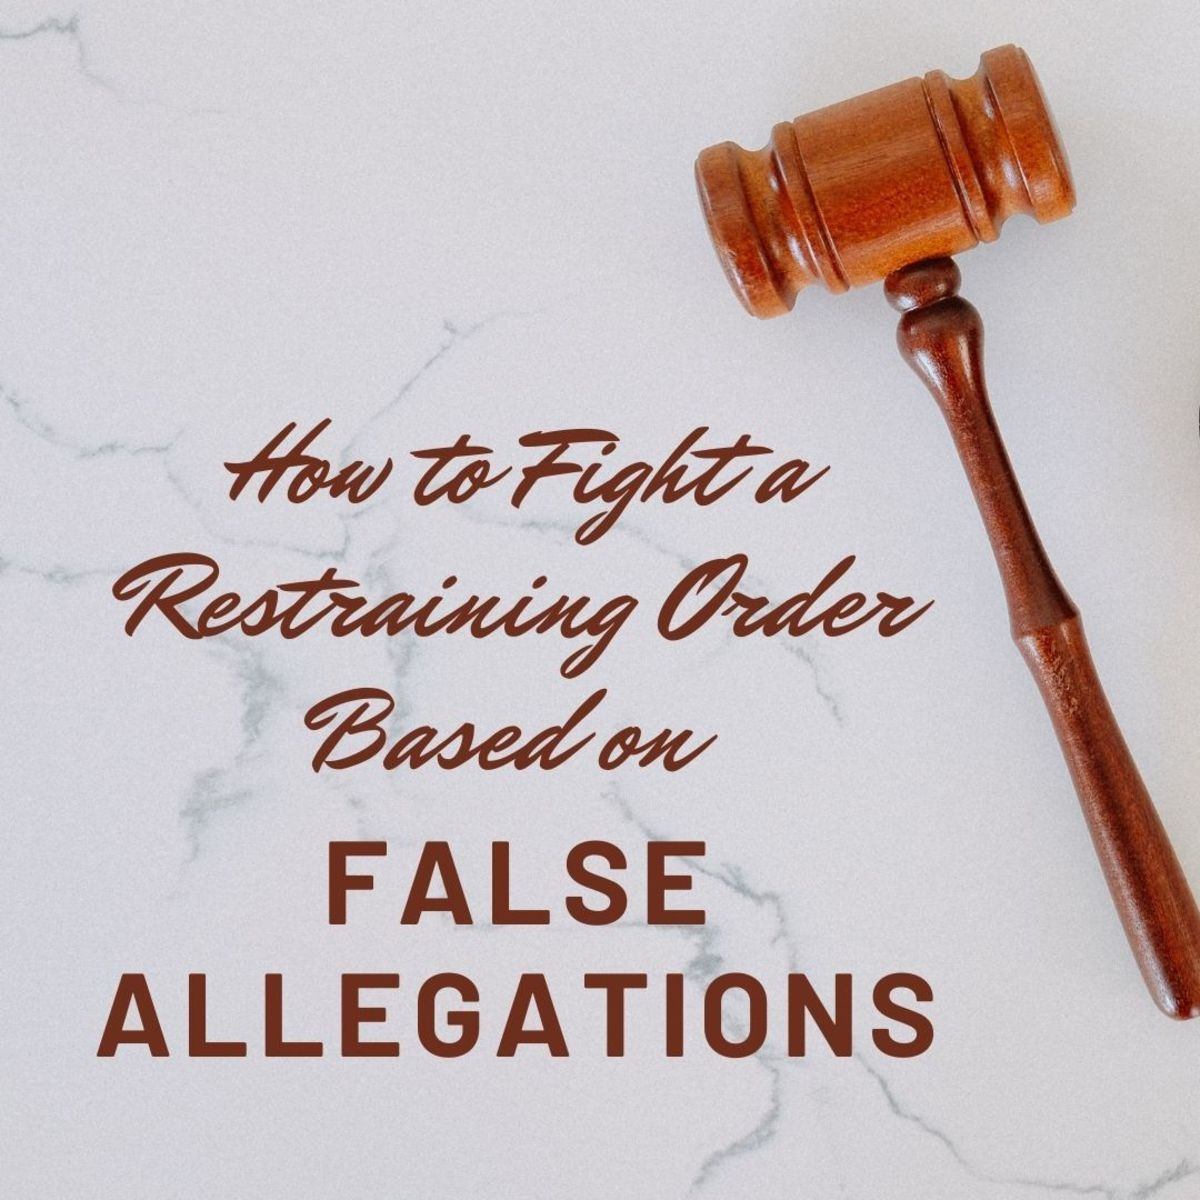 This article will provide tips and advice for fighting a retaliatory restraining order based on false allegations.